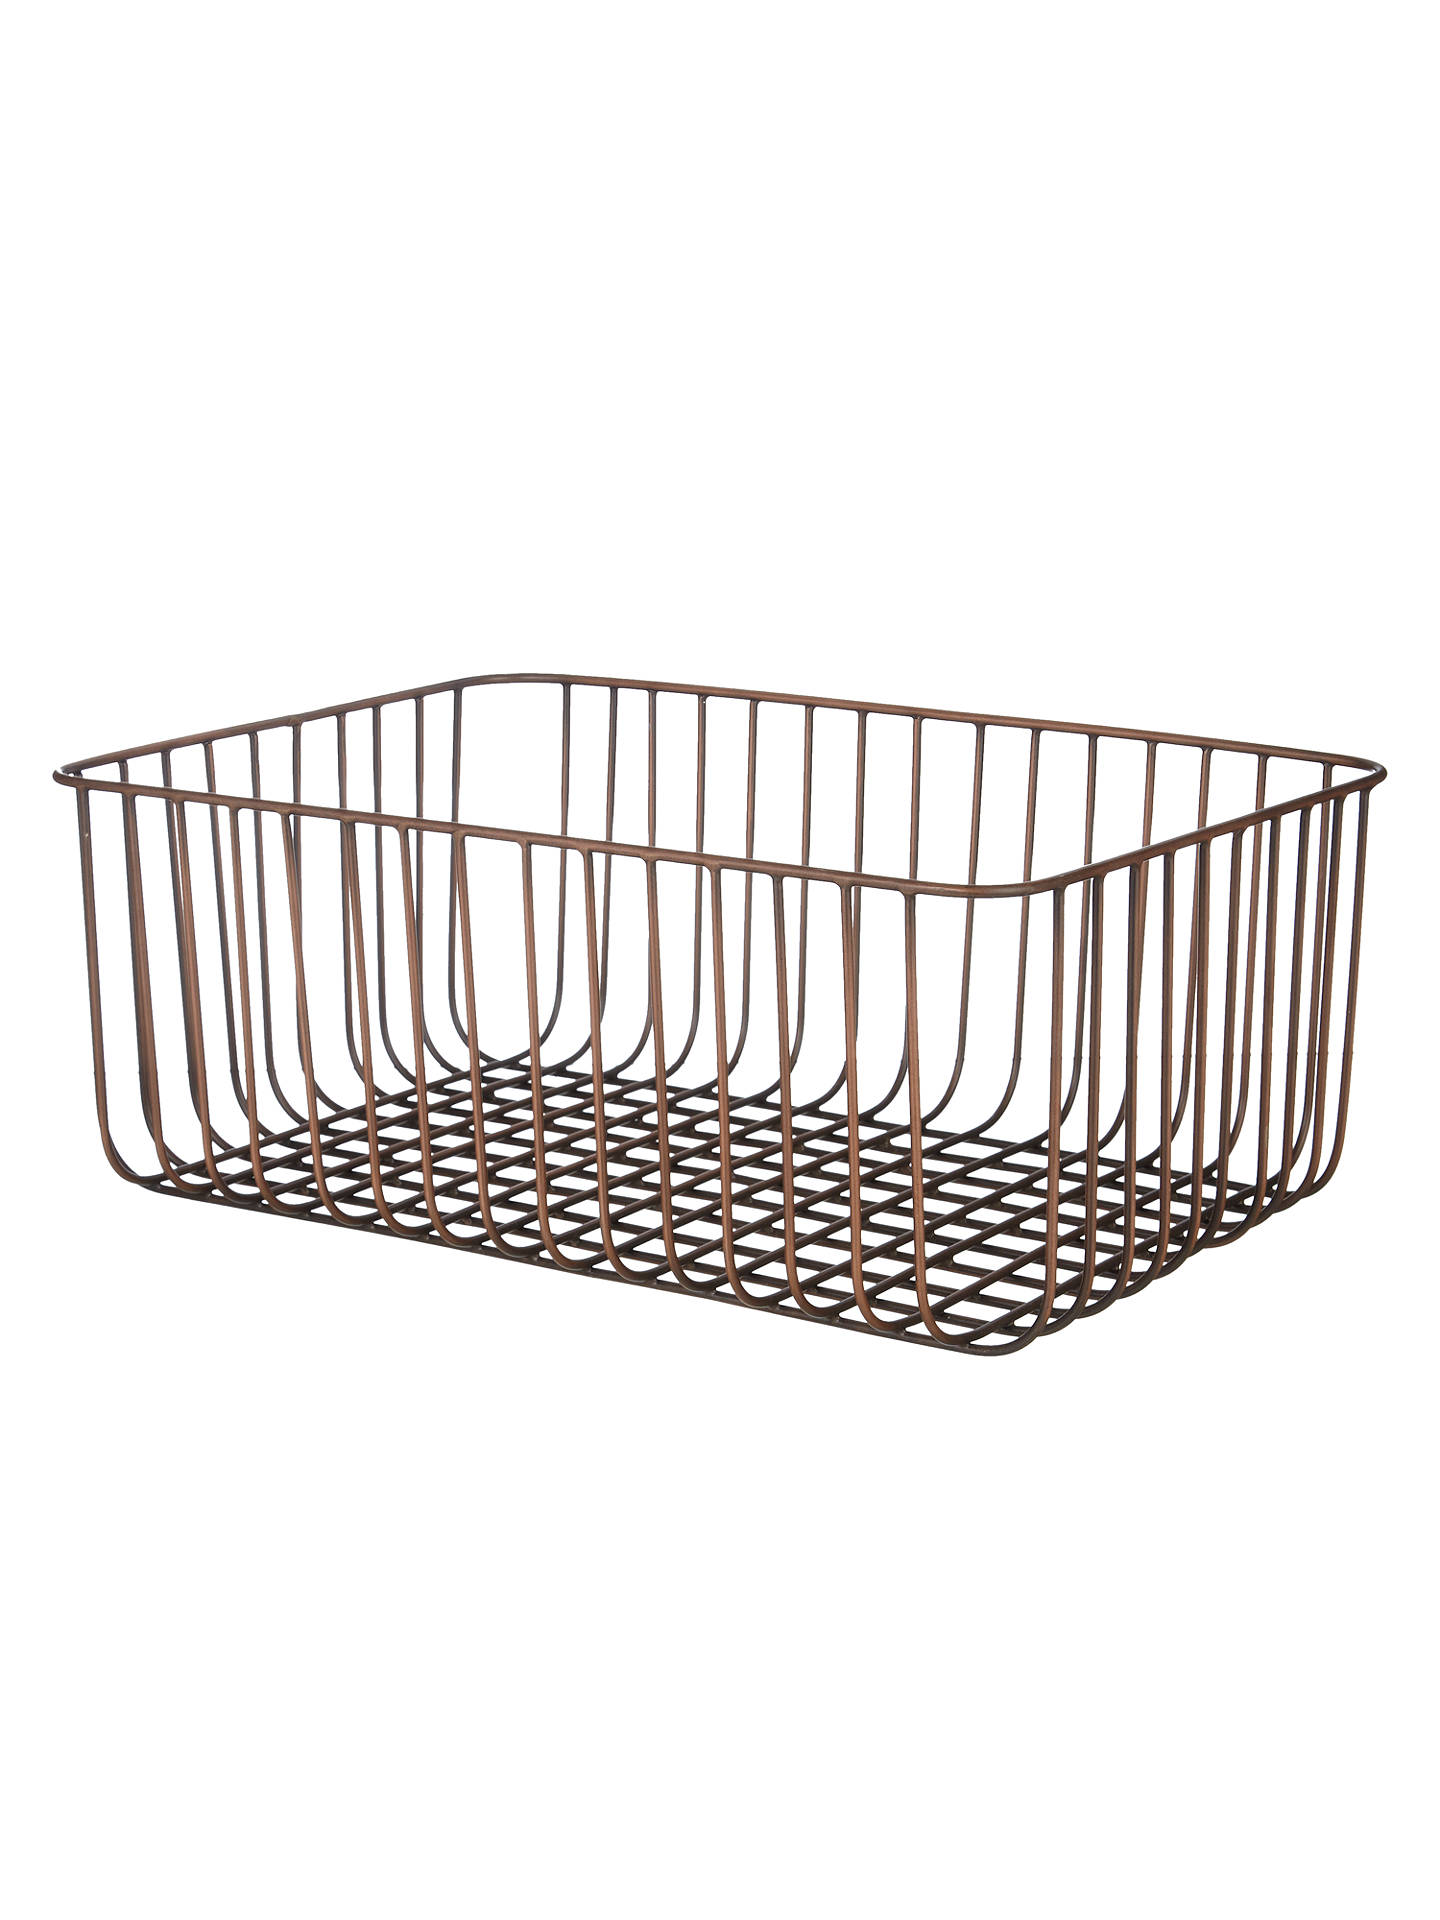 BuyJohn Lewis Fusion Antique Copper Wire Basket Online at johnlewis.com